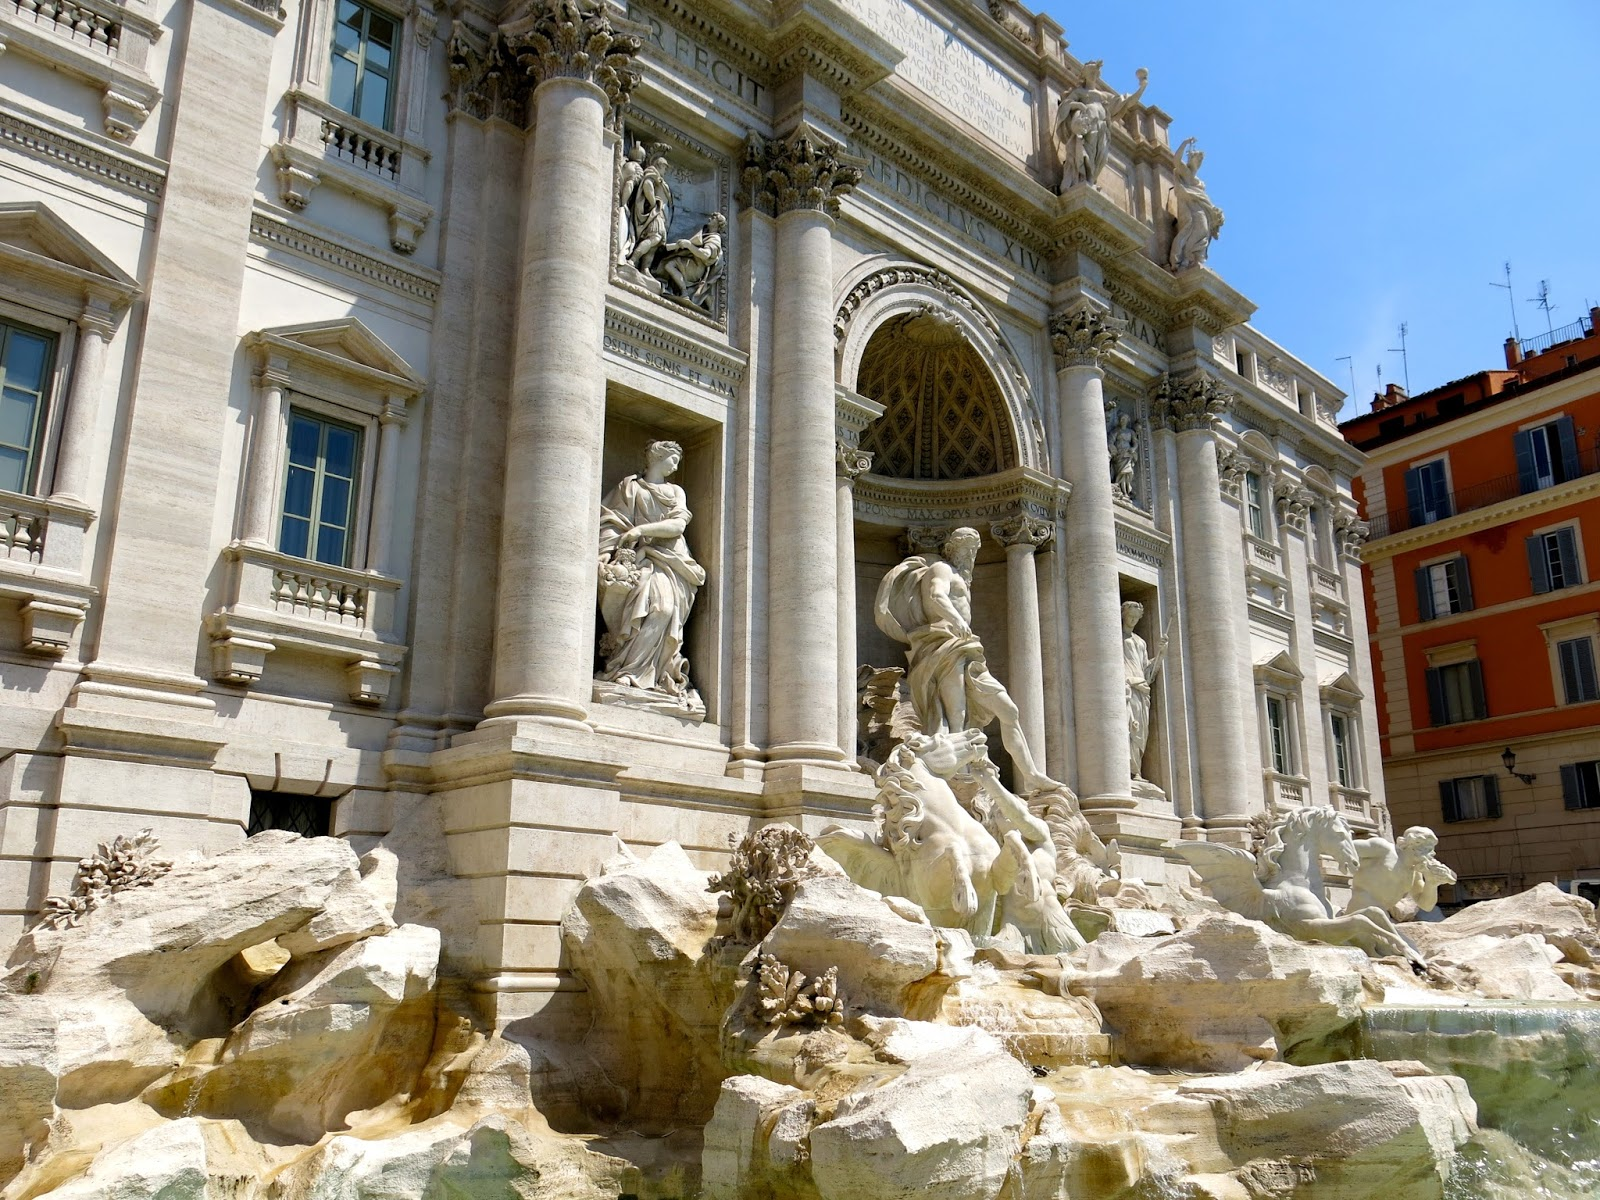 Cassie stephens art teacher travels rome it was so incredible to have trevi fountain just down the block from our hotel what an incredible sight to see right away i had previously been to italy sciox Gallery